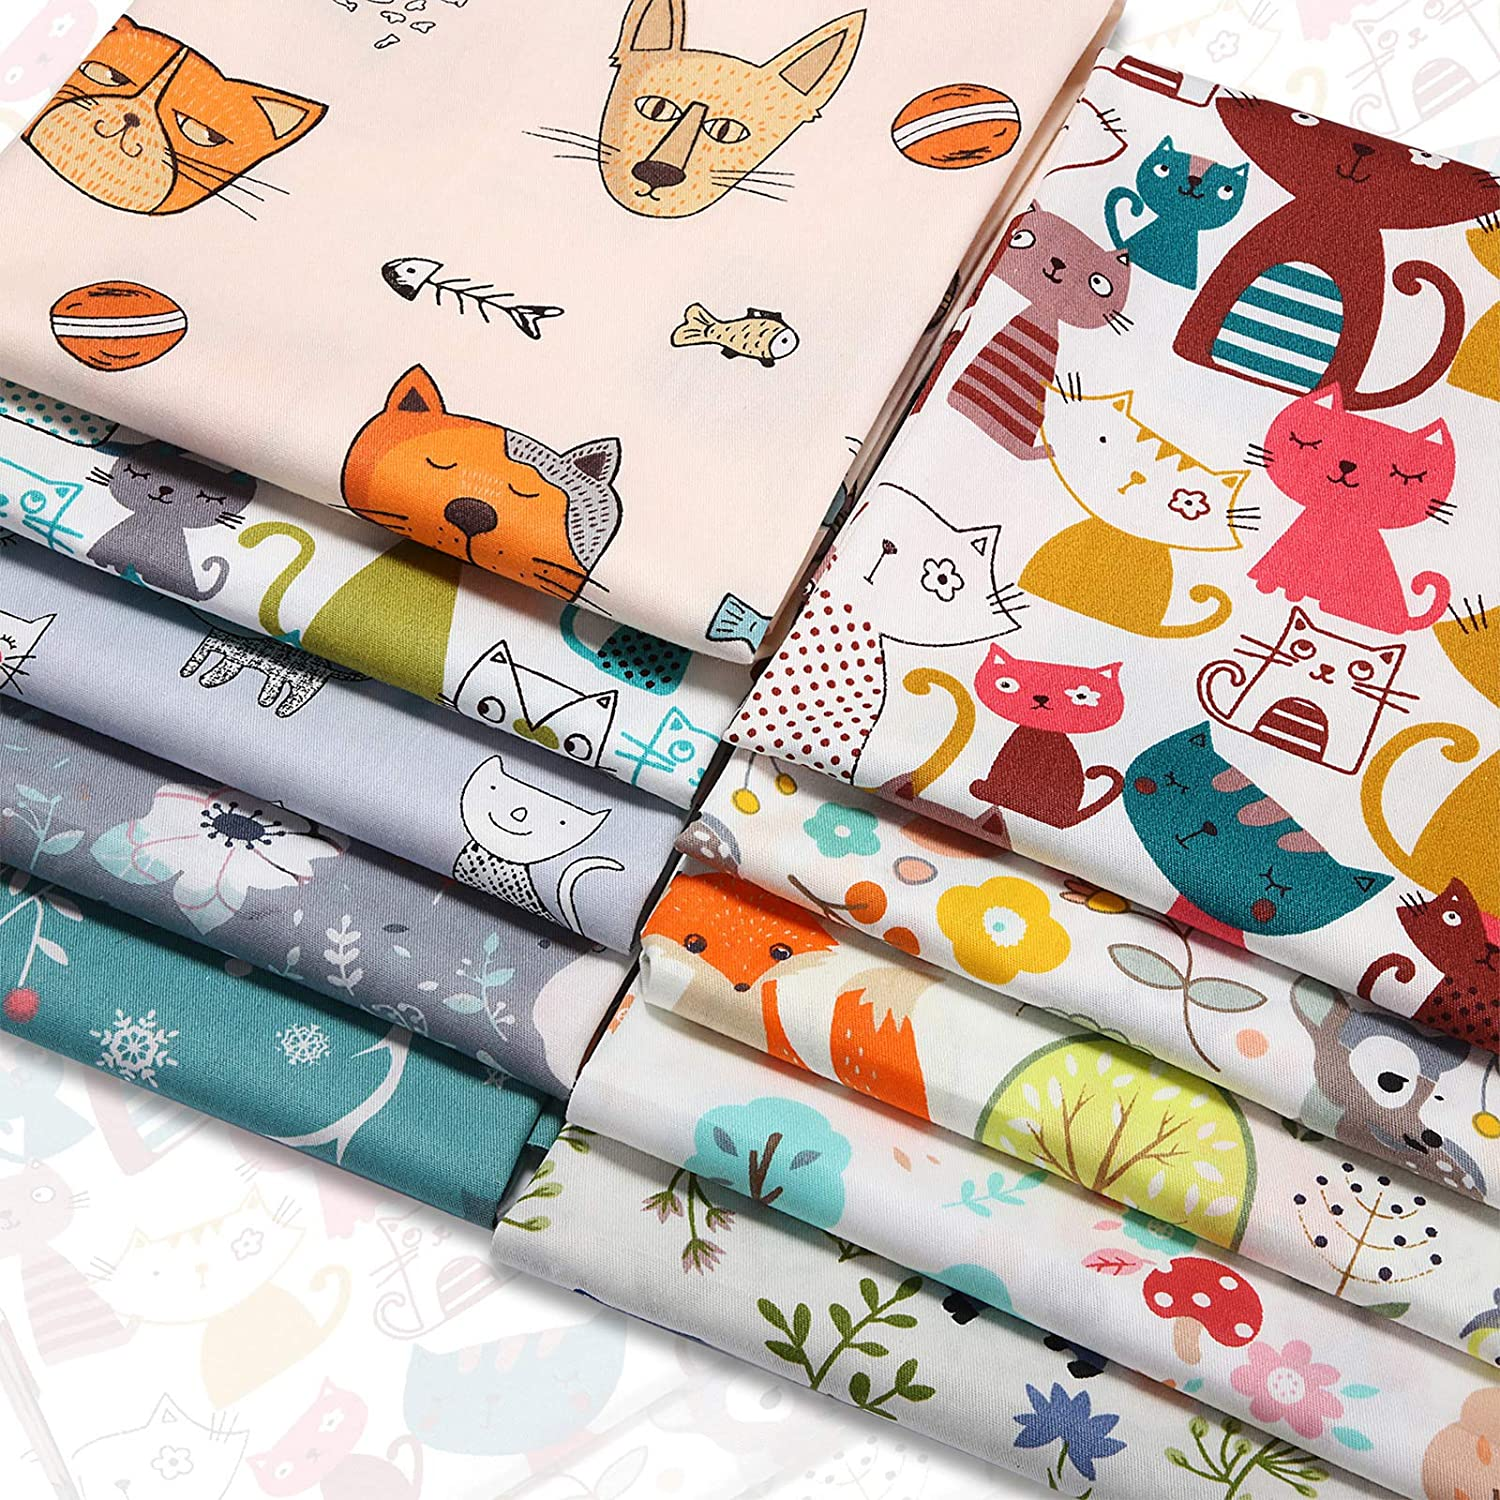 10 Pieces Animals Fat Quarters Fabric Bundles Cute Pattern Fabric Squares 20 x 20 Inch Printed Cat Dog Squirrel Elk Bear Sewing Fabric Scrap for Quilting Patchwork Scrabooking Cloth DIY Craft